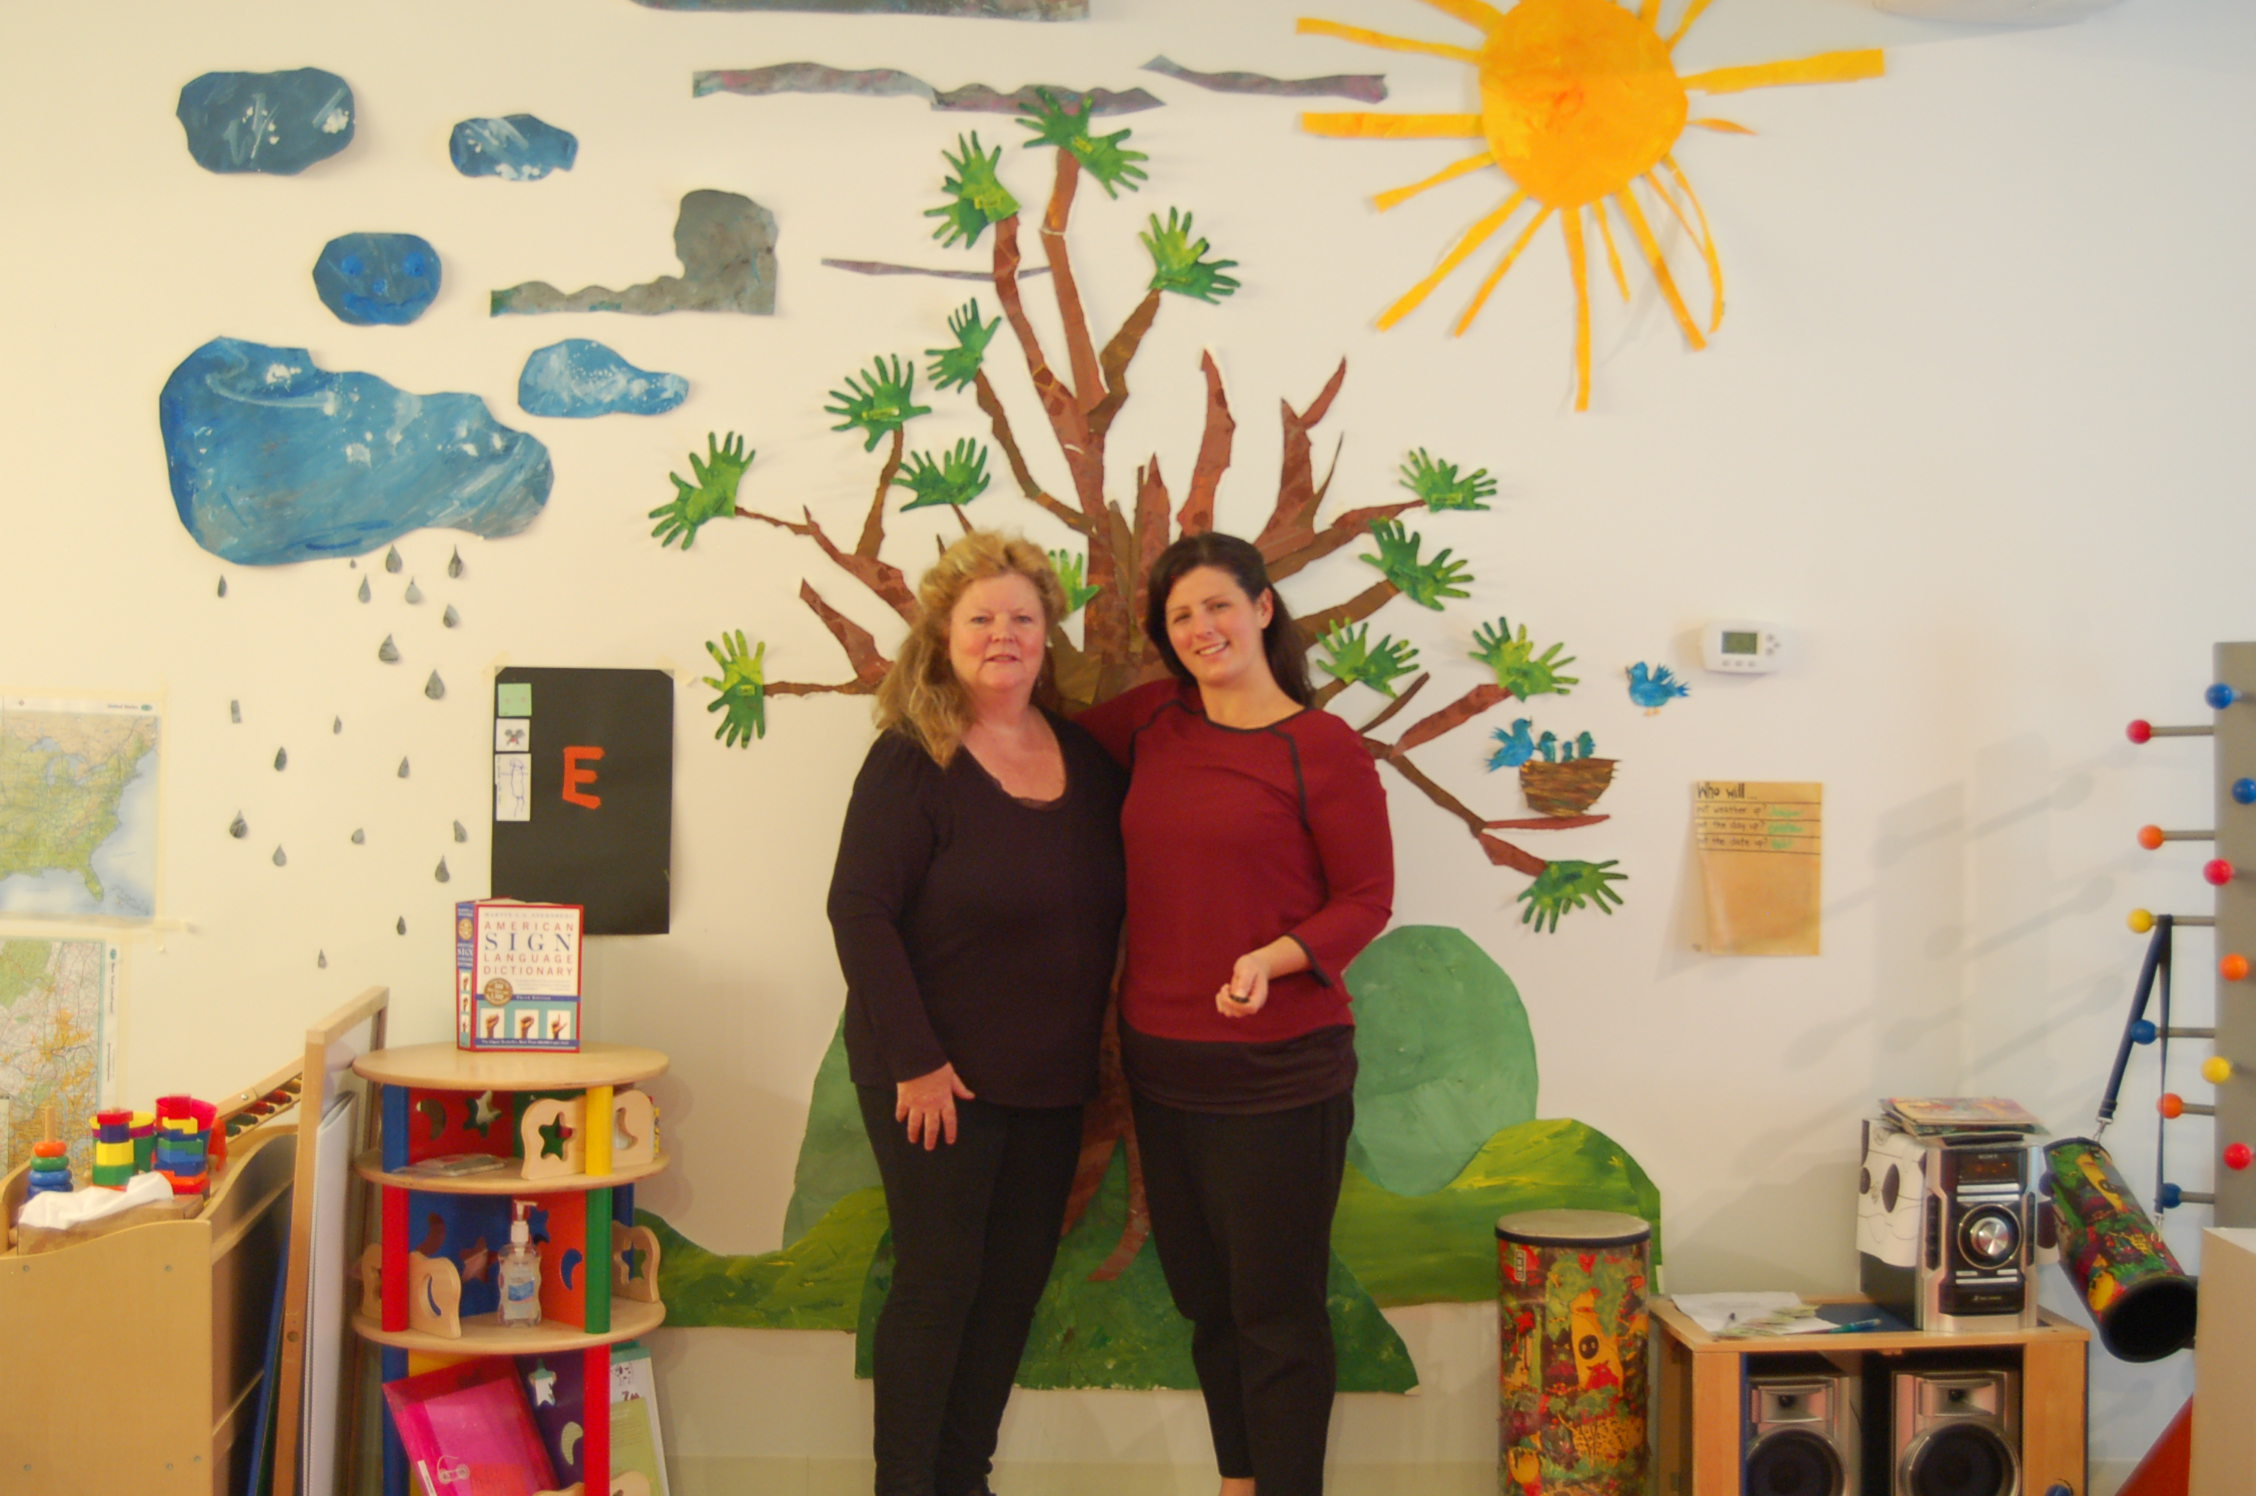 Heather and Katy in front of the Eric Carle mural that the students made.